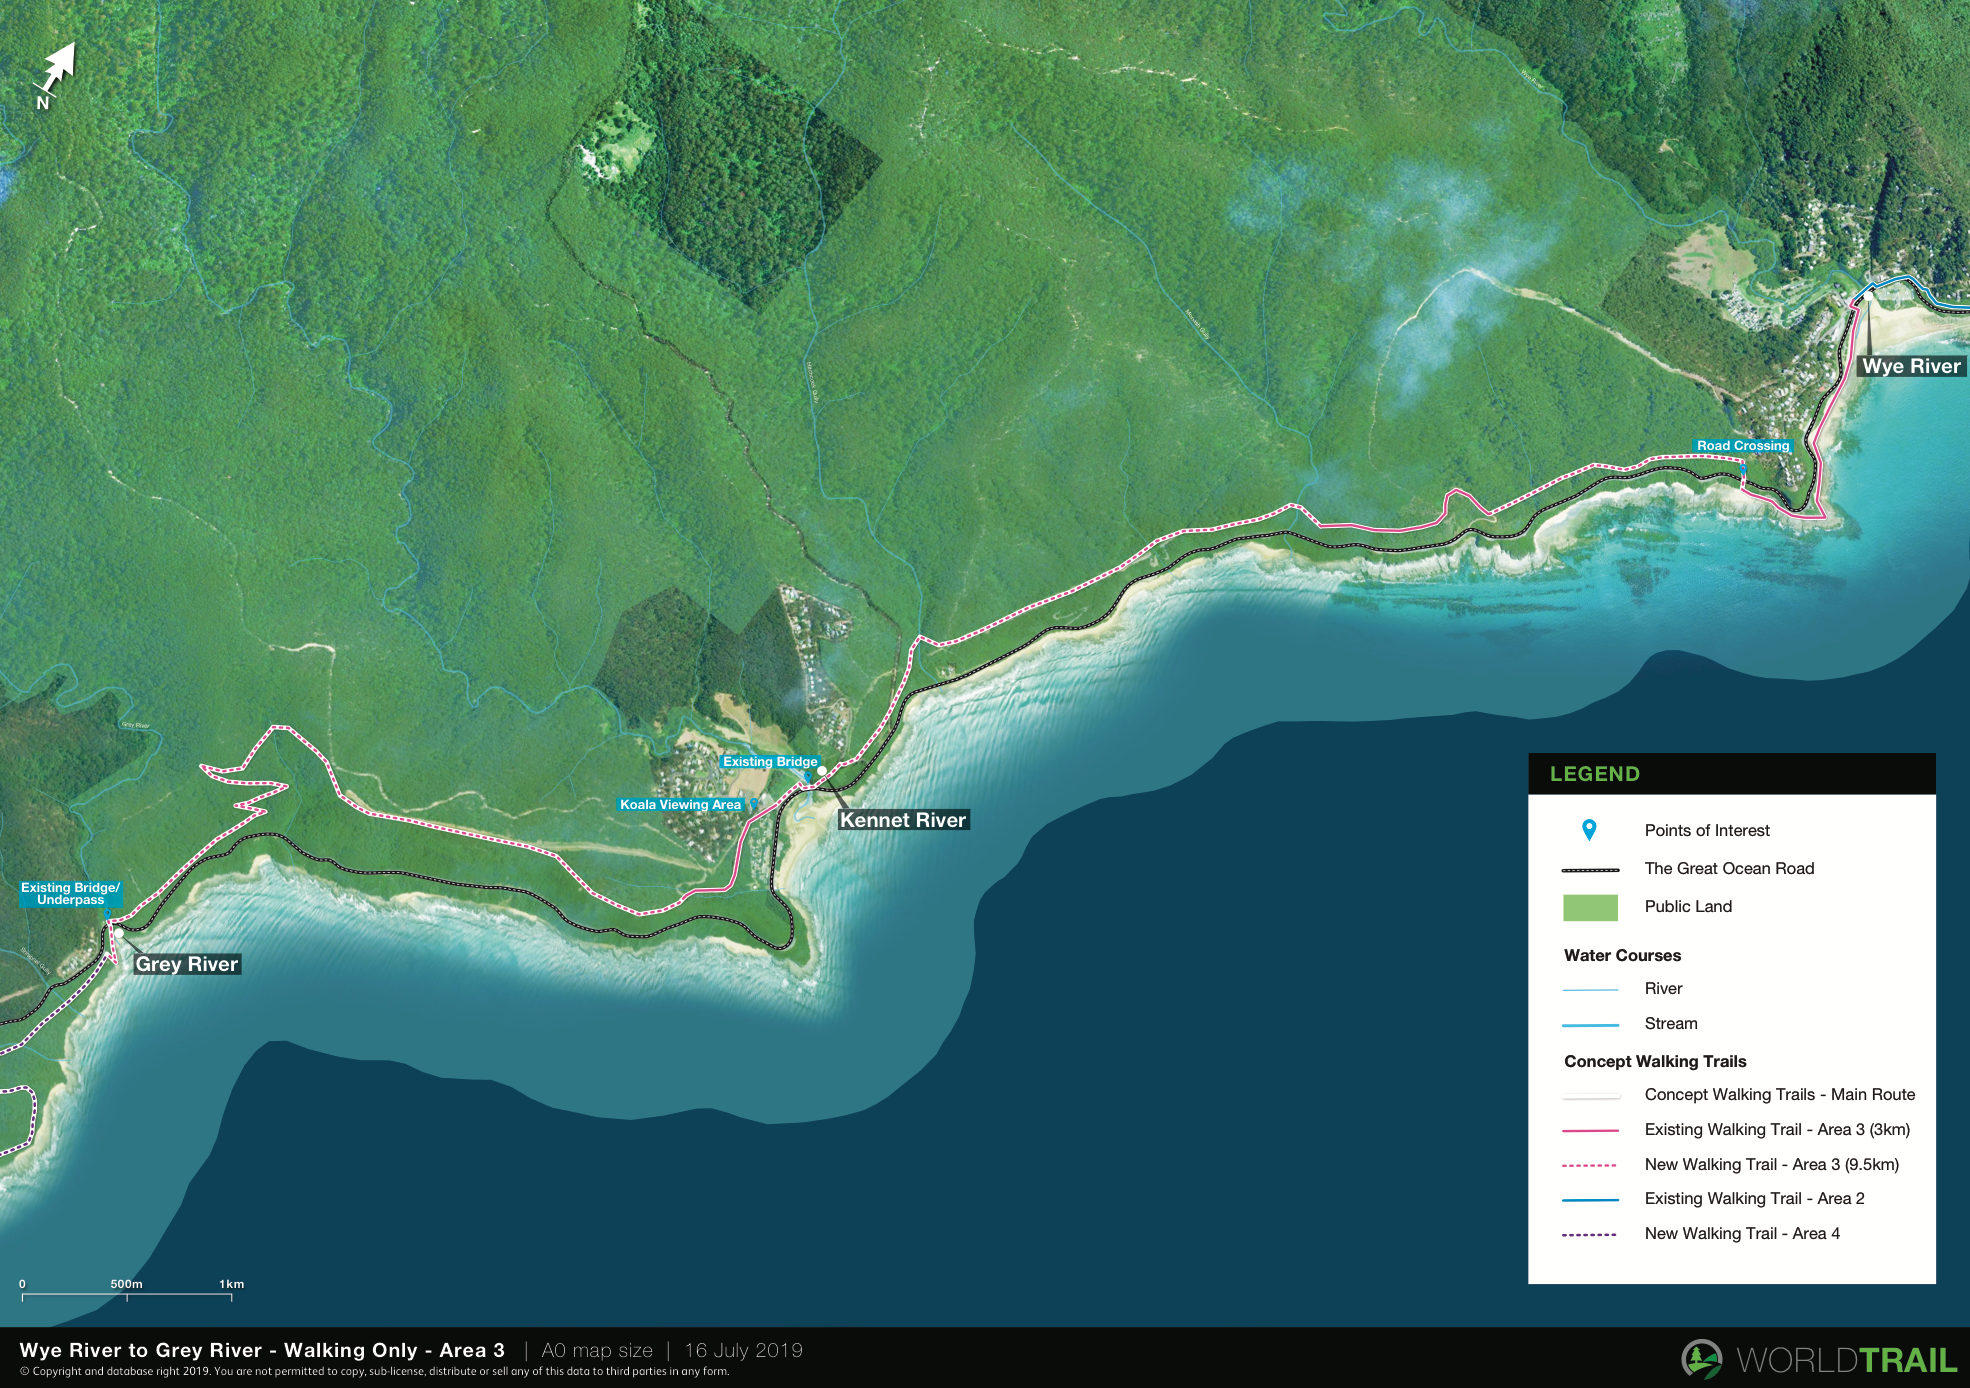 Draft concept map for a walking trail starting in Wye River and finishing in Cape Patton in the Great Ocean Road region